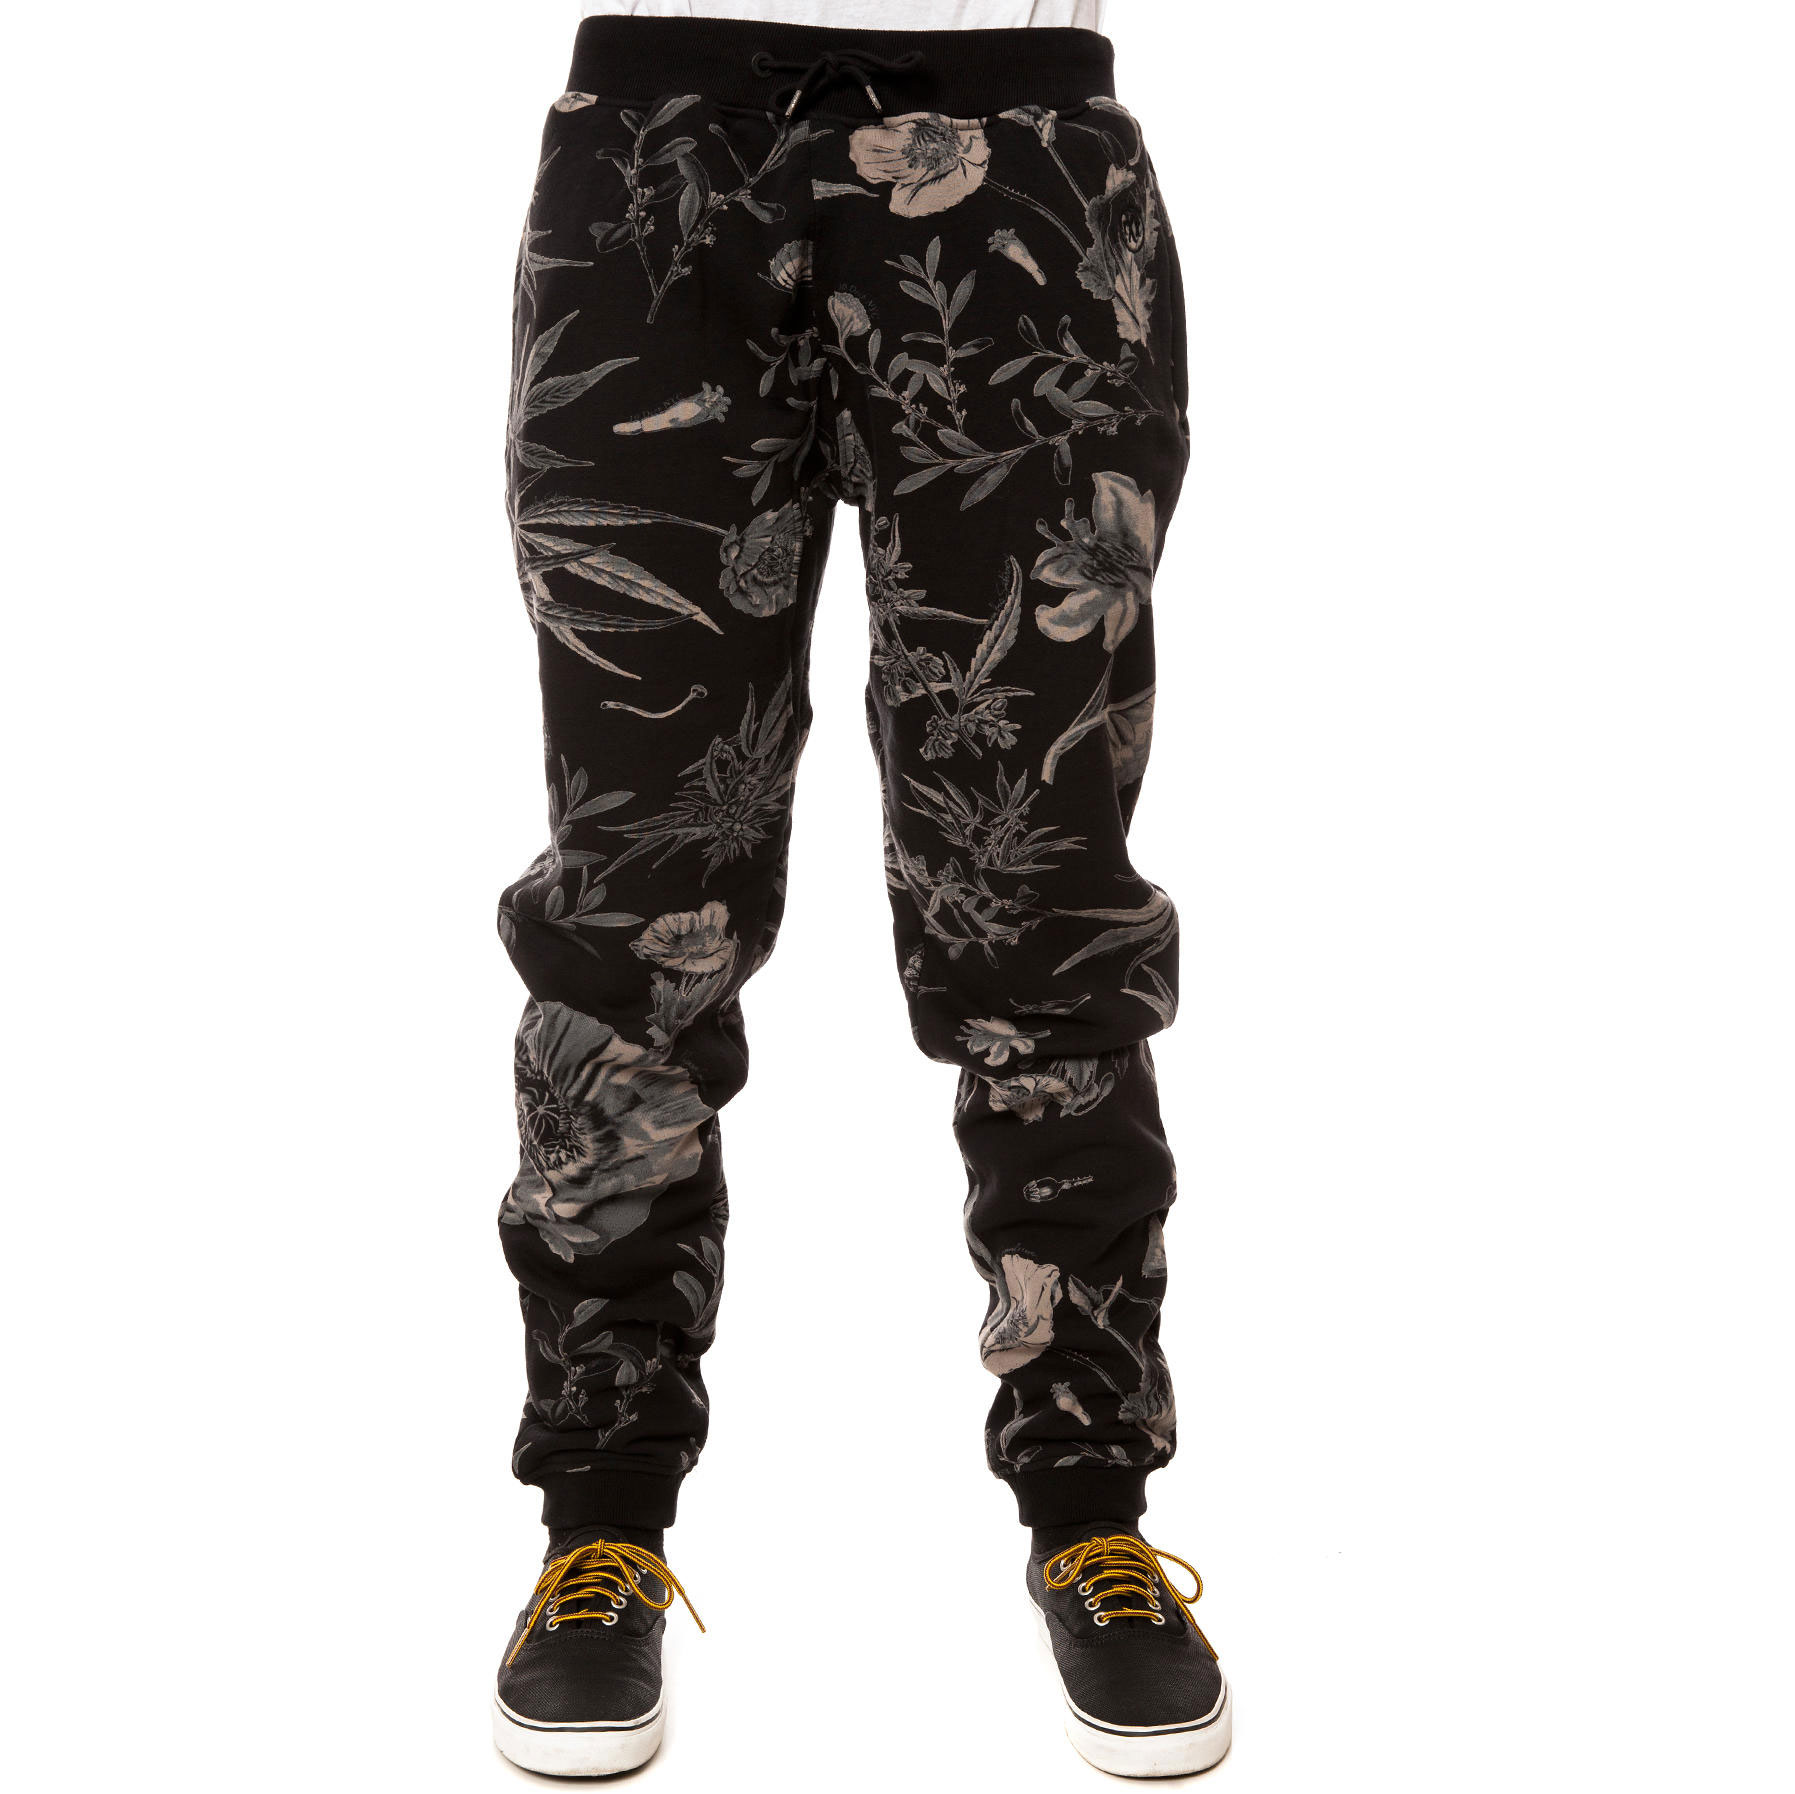 10 DEEP The Night Vision Bacchanal Sweatpants in Black _Clothing_服裝&配飾_OOXOO SHOP (MCJH&TWJ JTYS&TYC K-THREE DSMOSIS)